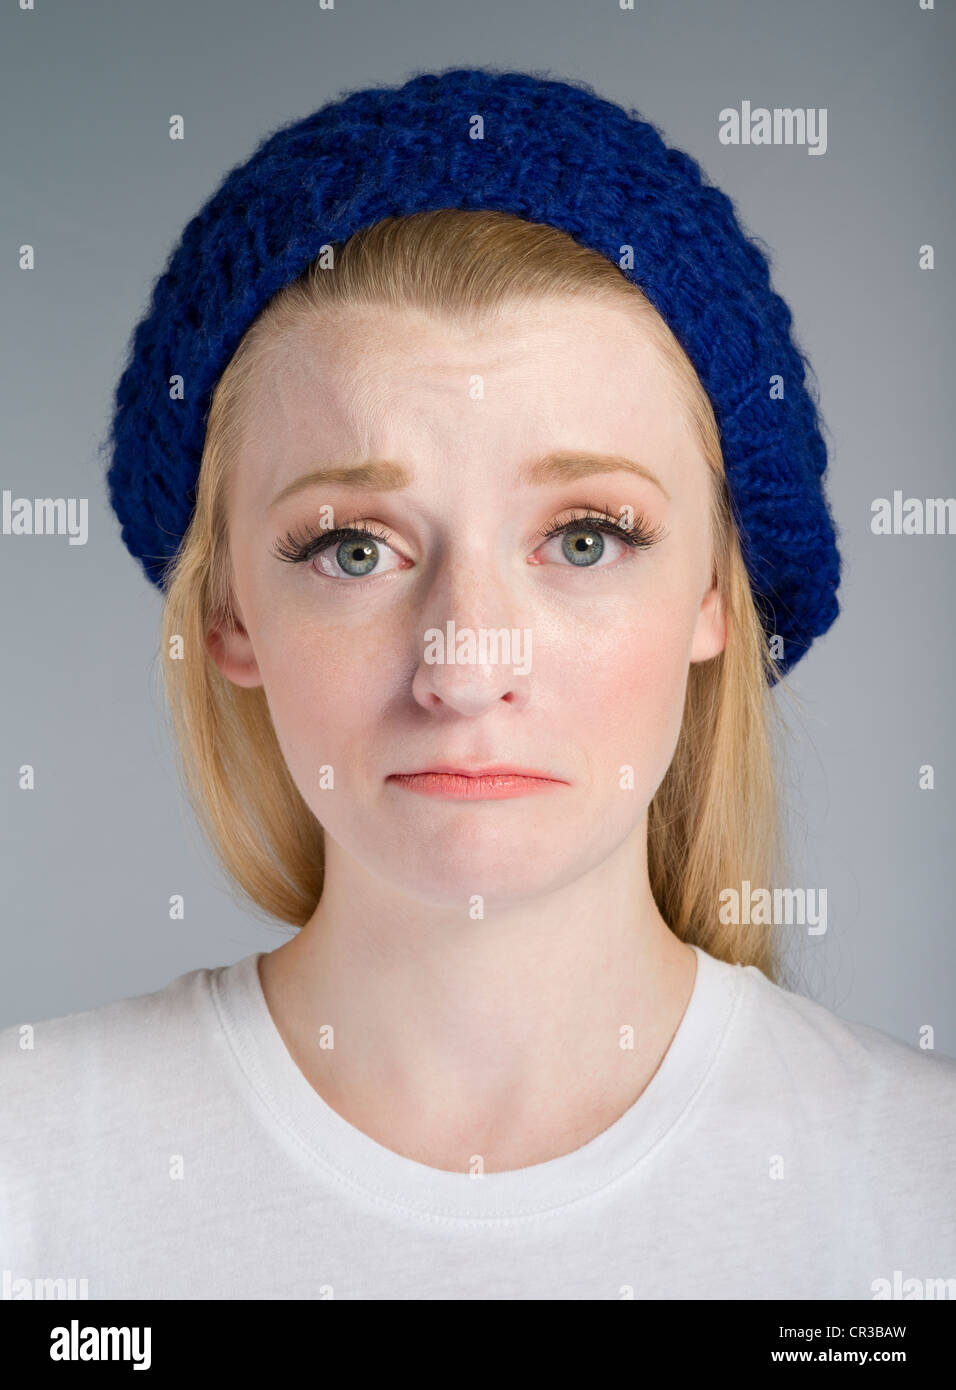 Pale complexion Caucasian girl with blonde / blond hair in her twenties - Stock Image